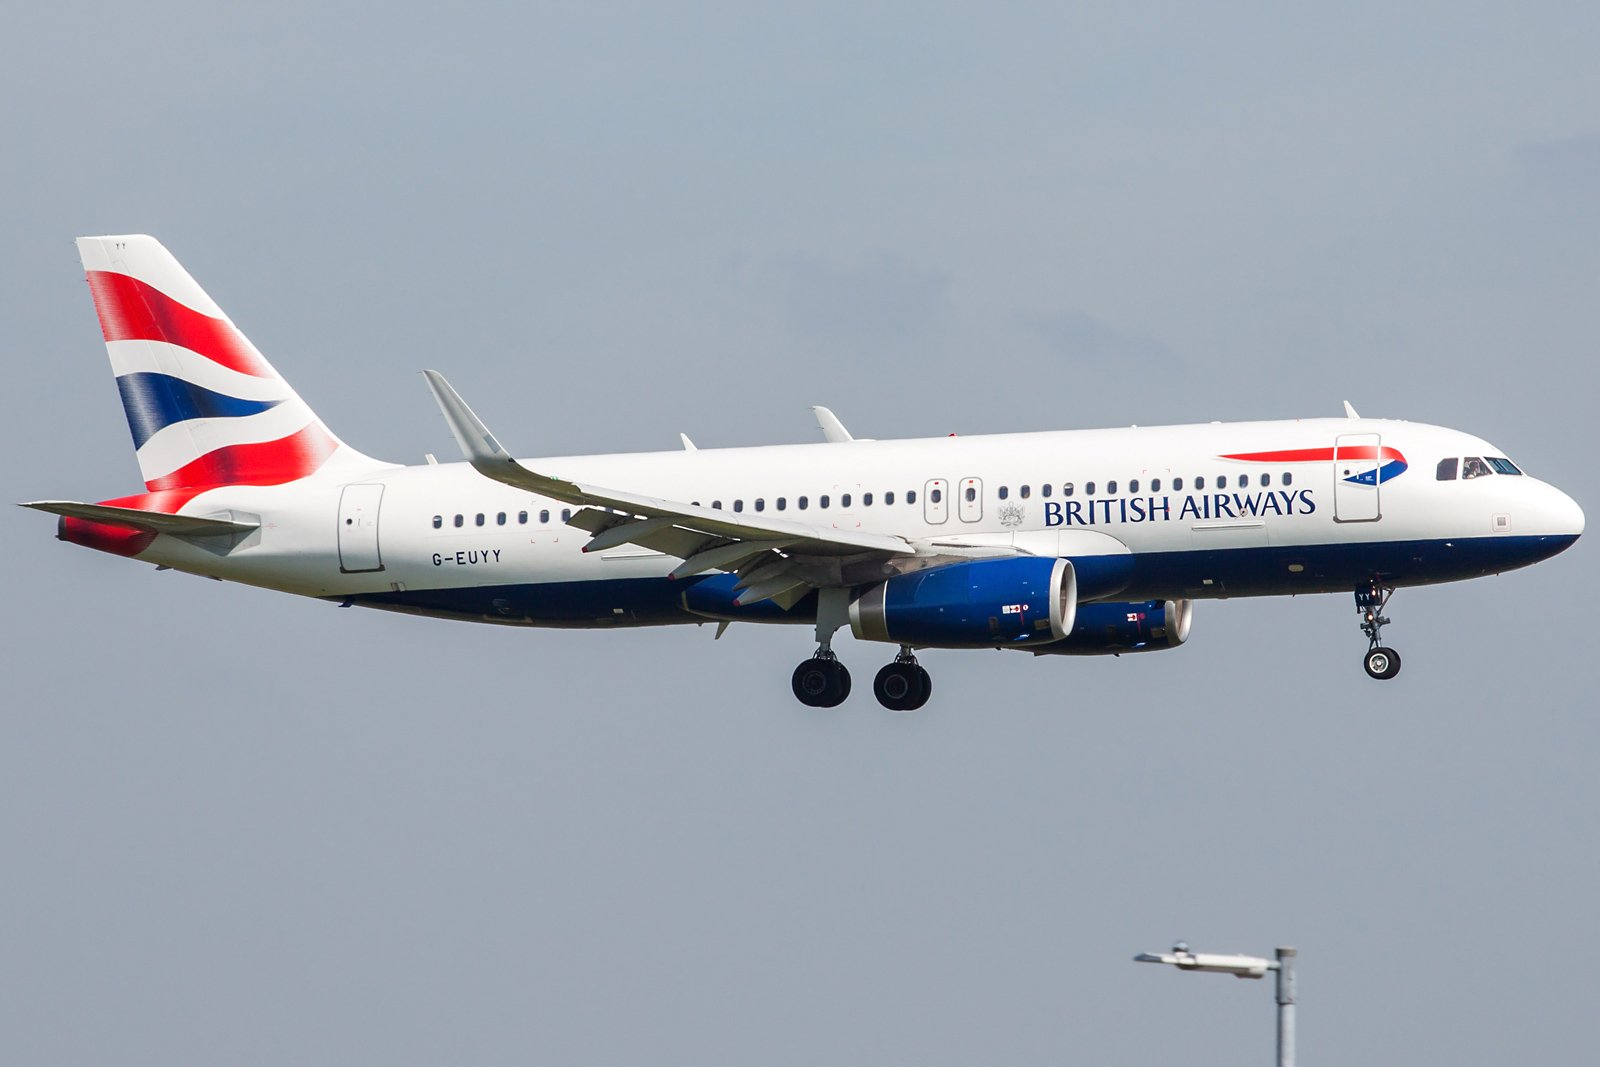 British Airways Airbus A320-232(WL) G-EUYY